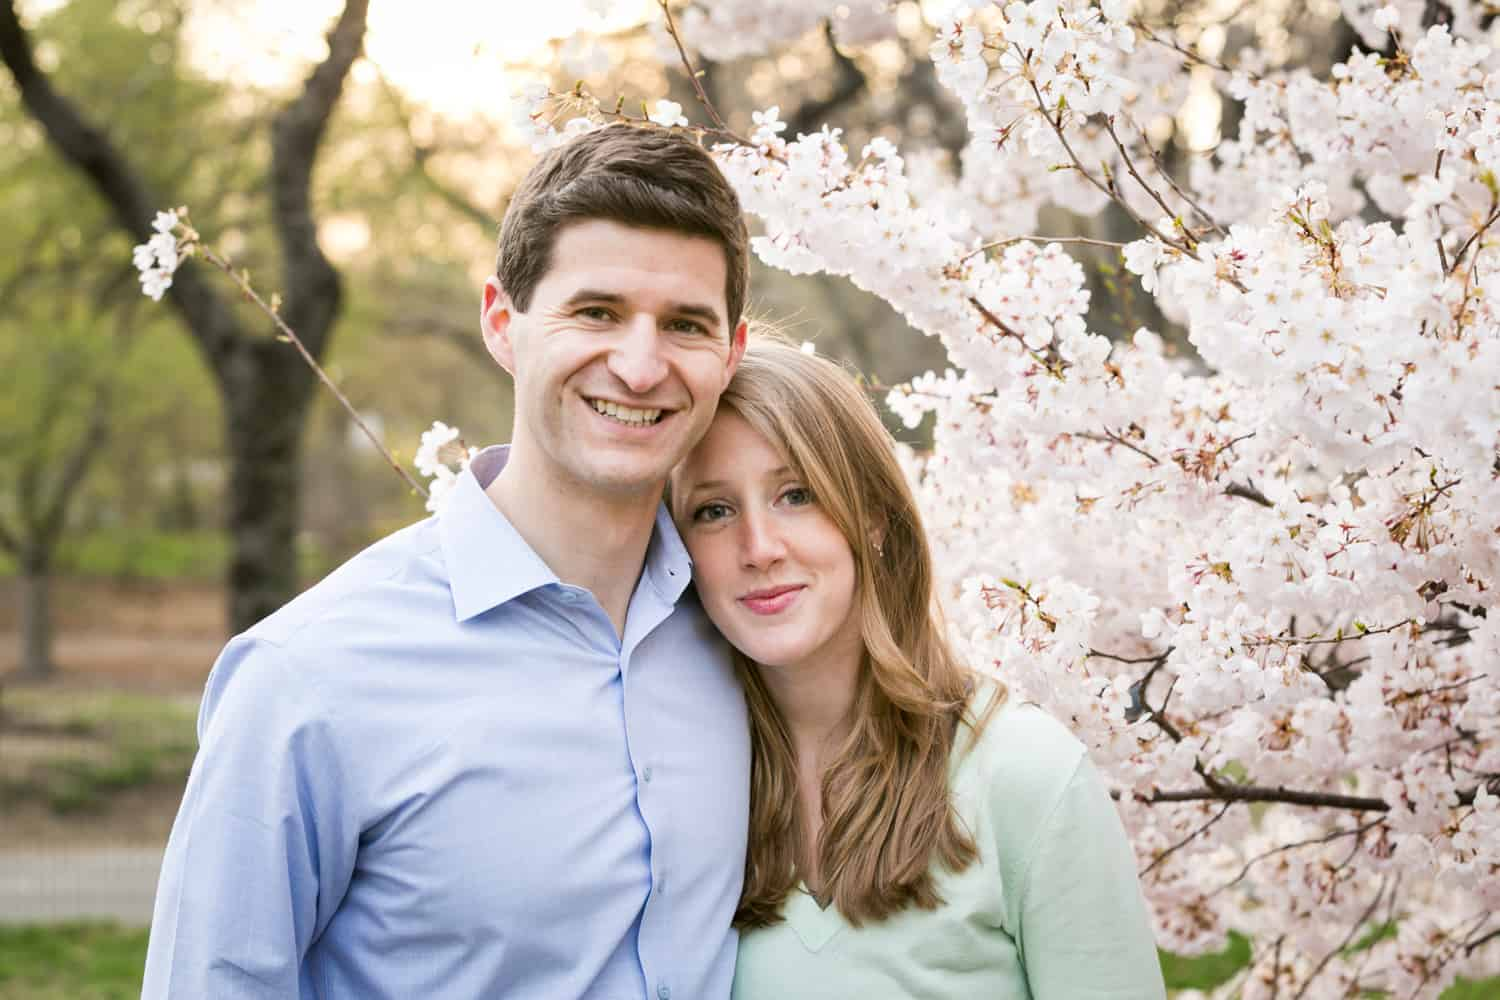 Couple standing in front of cherry blossoms in Central Park for an article ranking the best places to see cherry blossoms in NYC